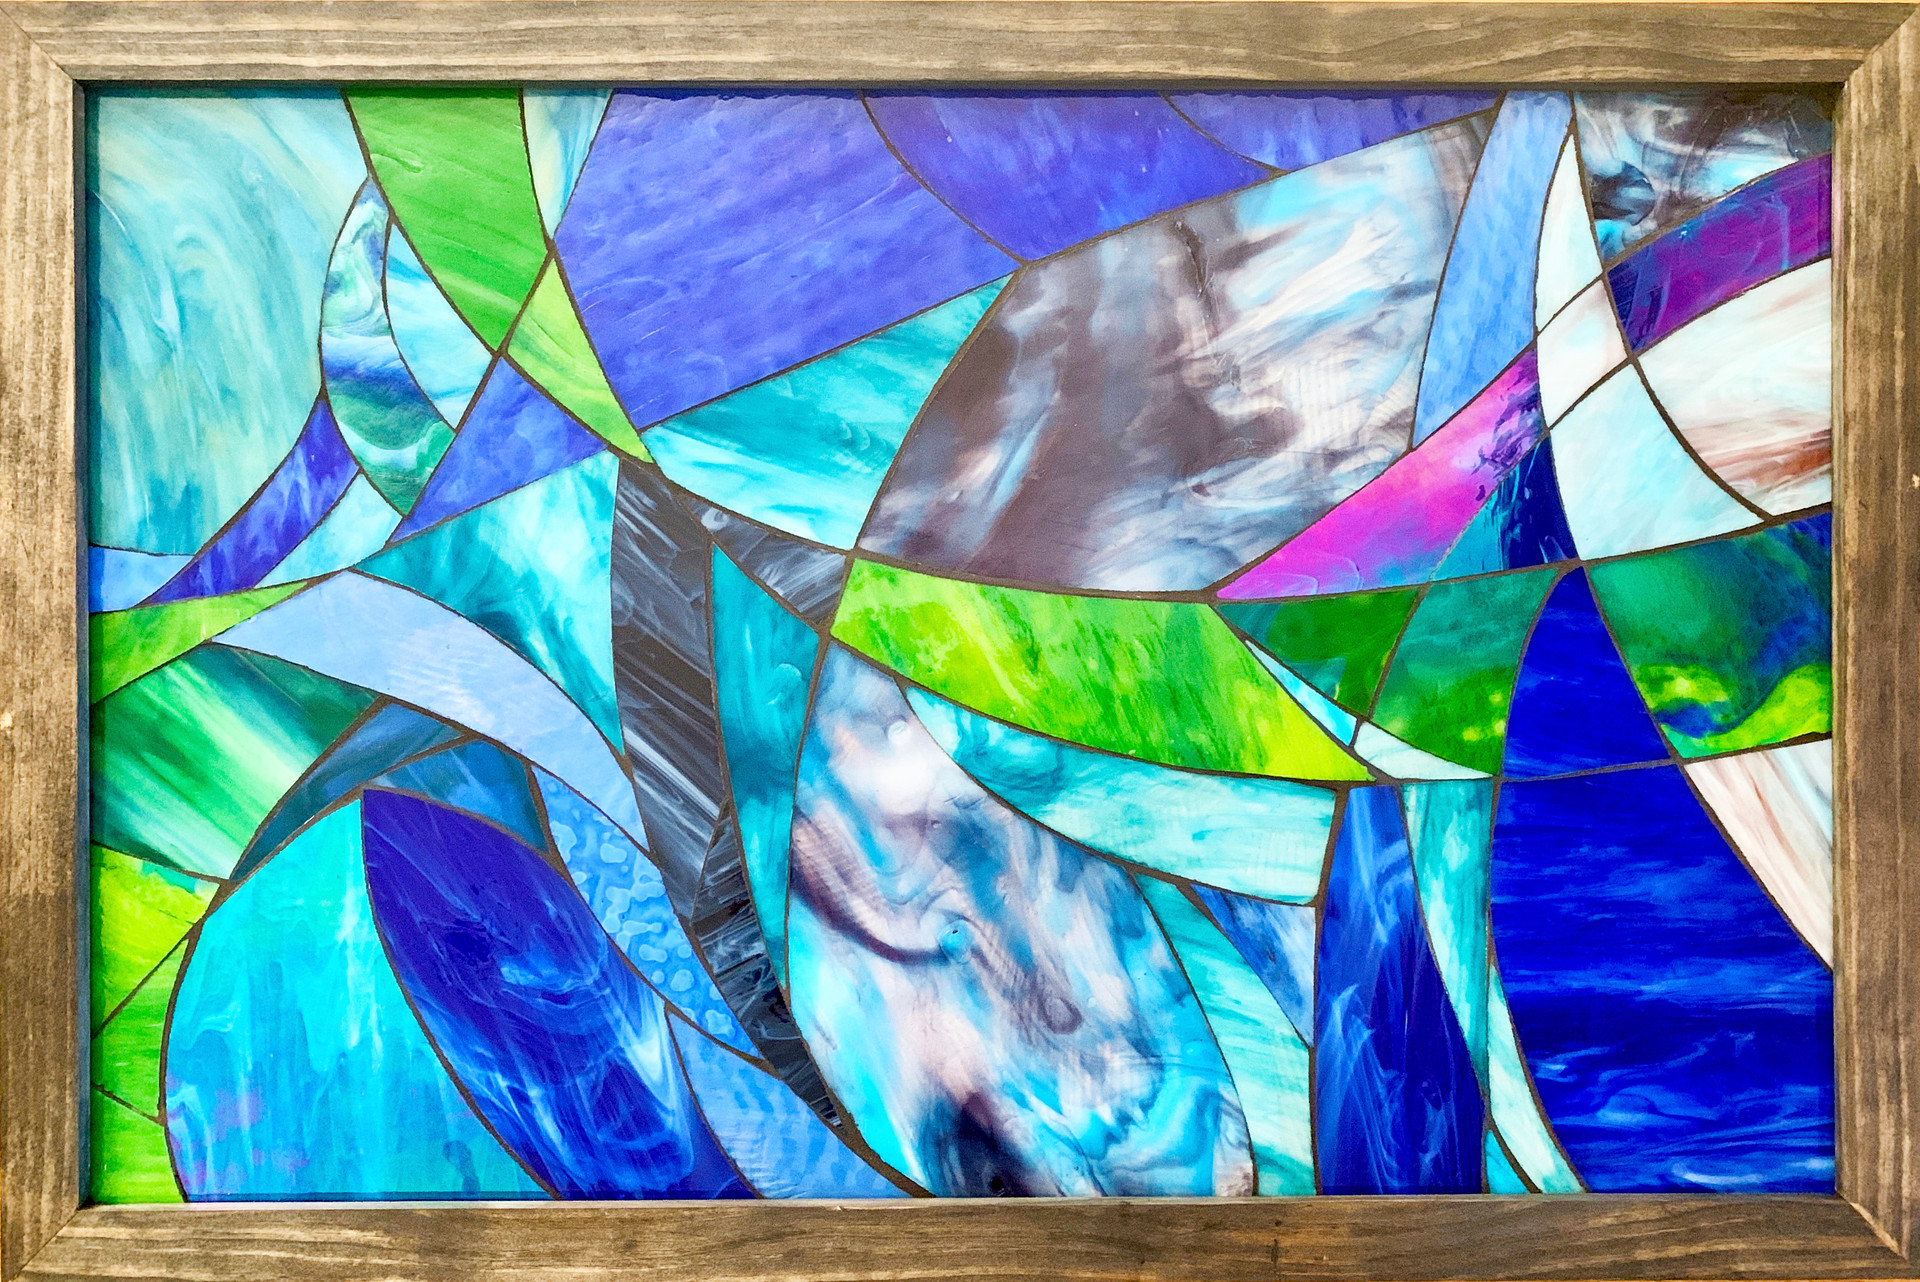 stained glass on backer board, 3 ft. x 2 ft.